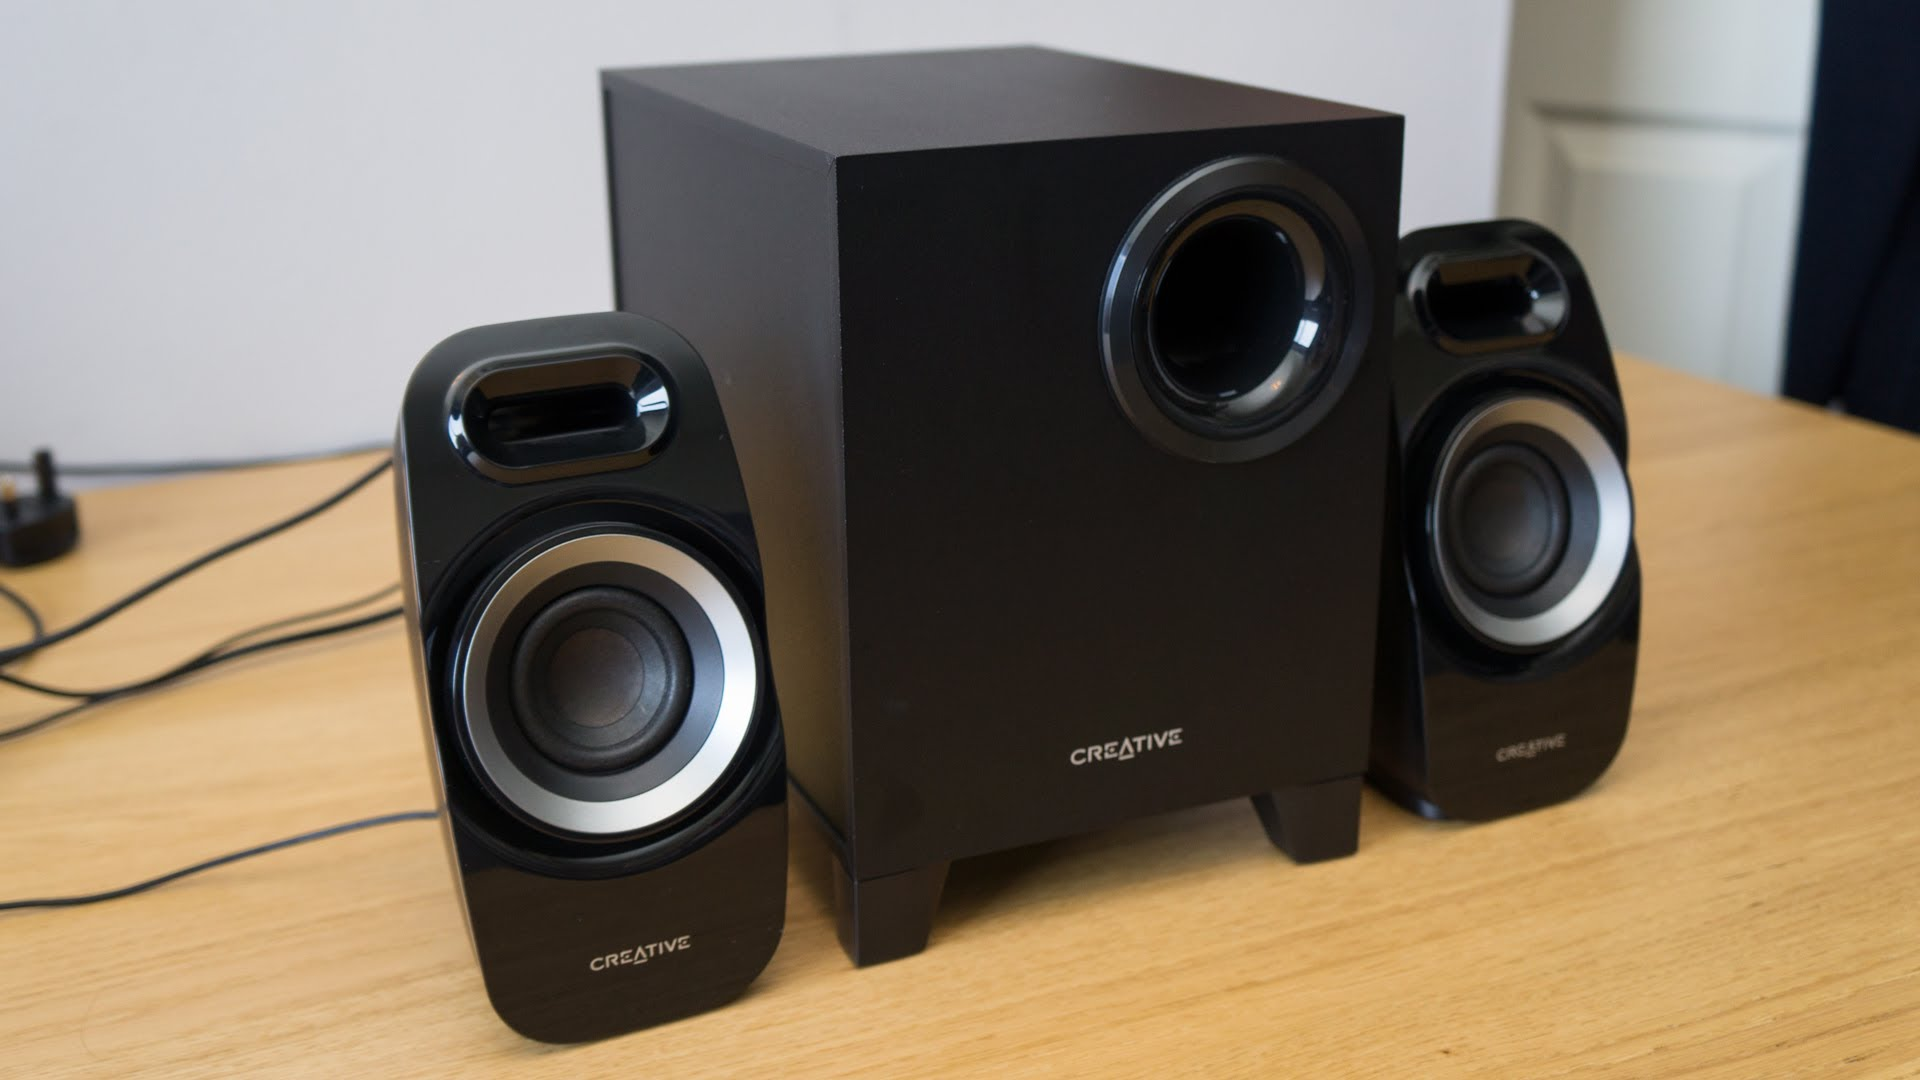 eBay Offer : Creative Inspire T3300 2.1 Multimedia Speakers System @Rs.2,999